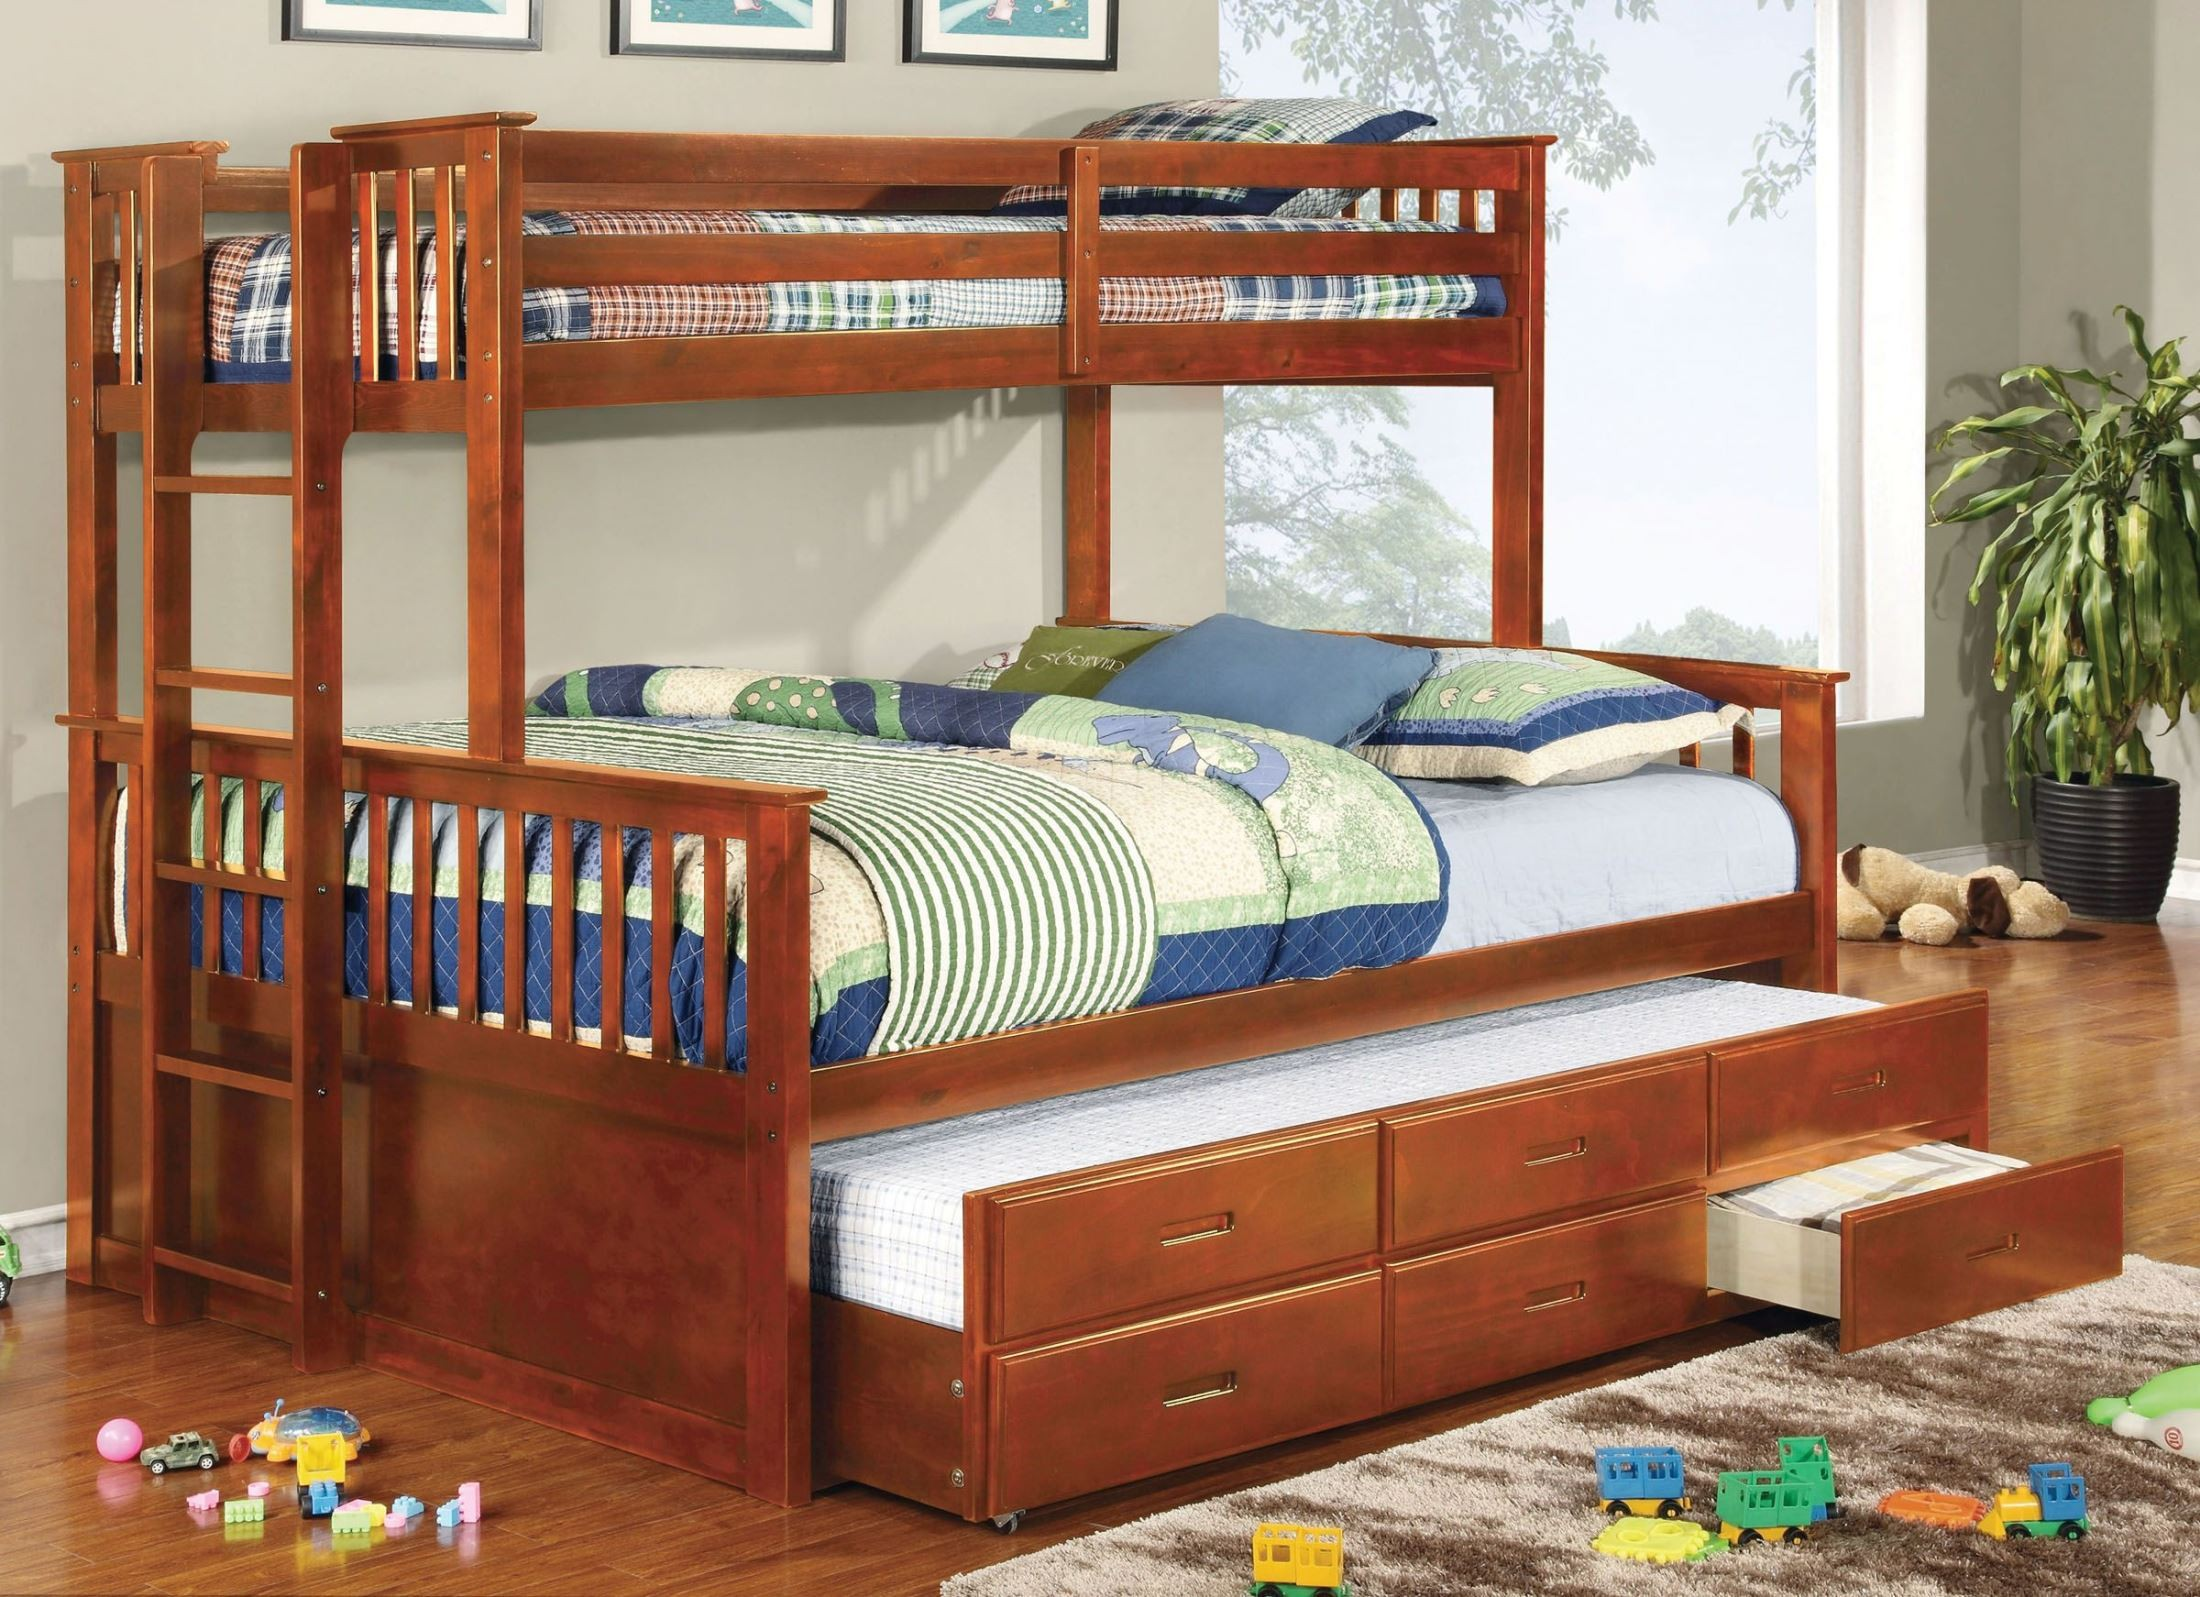 University Oak Extra Long Twin Over Queen Bunk Bed From: 2 twin beds make a queen